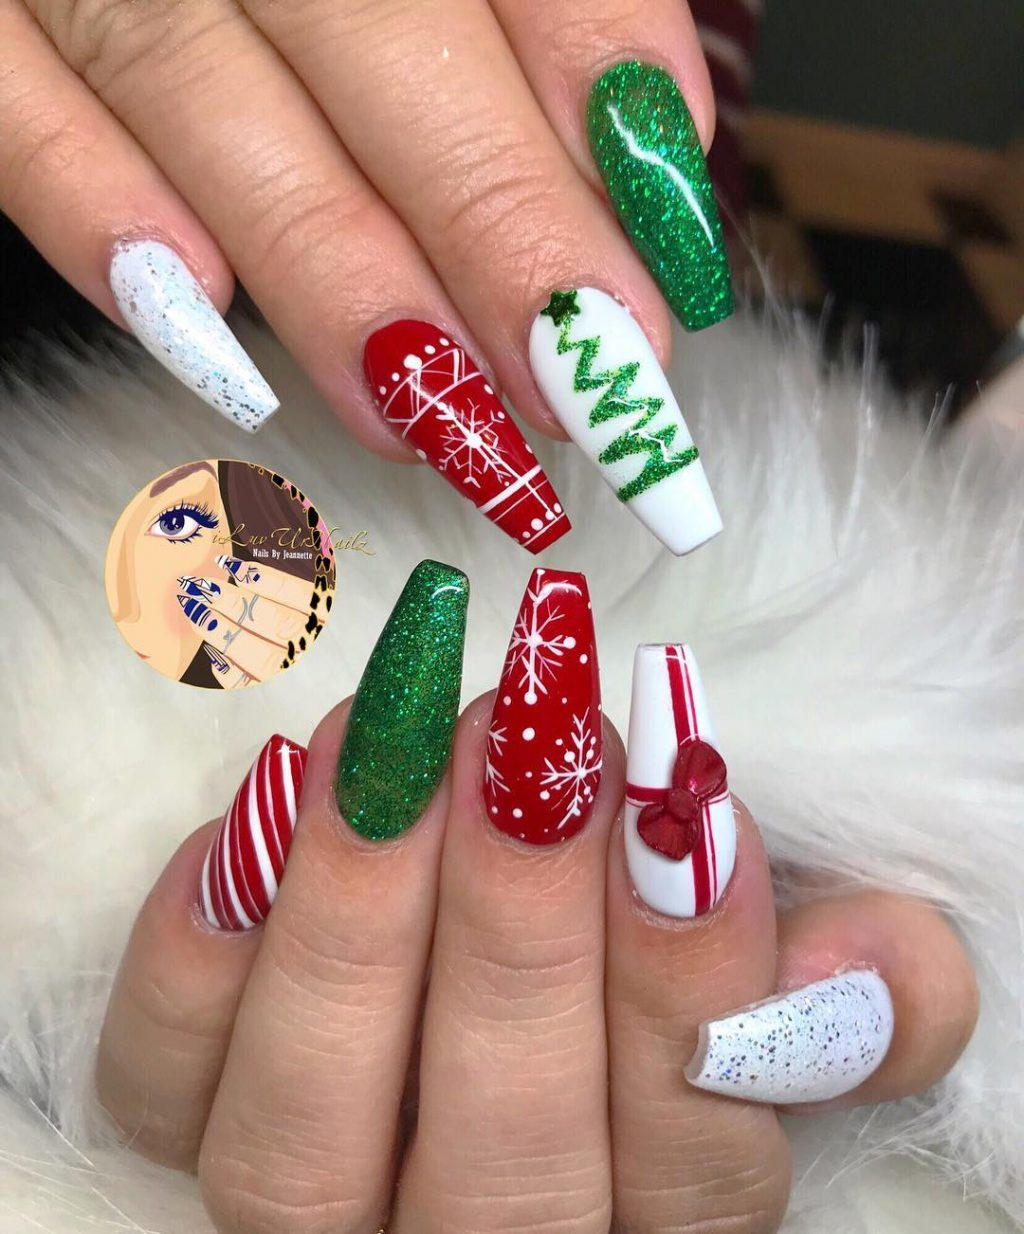 Xmas Nail Patterns: The Cutest And Festive Christmas Nail Designs For Celebration